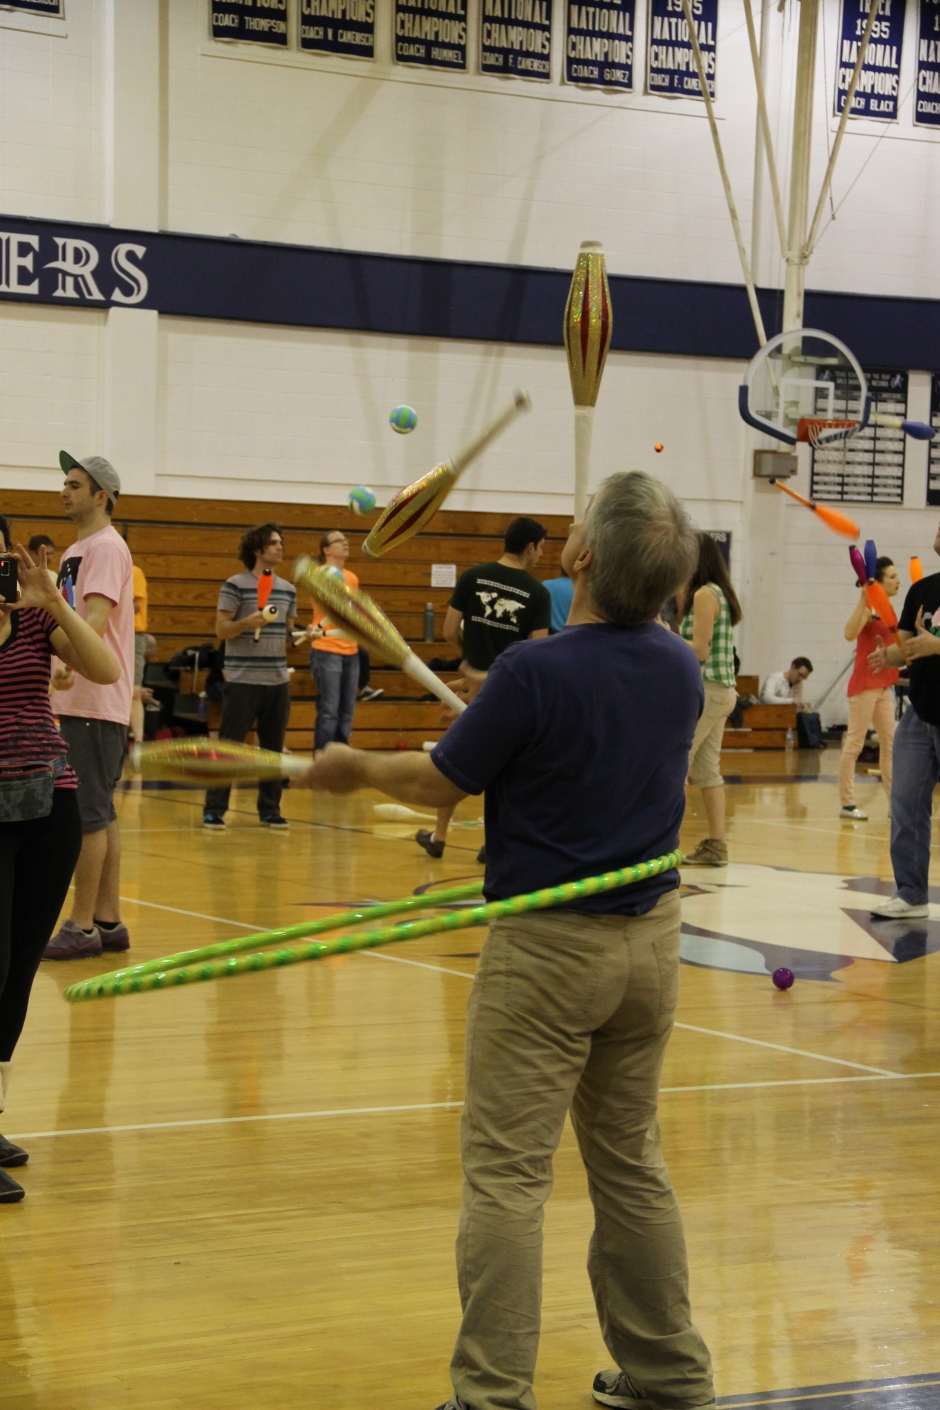 Juggling and hula hooping with a balance